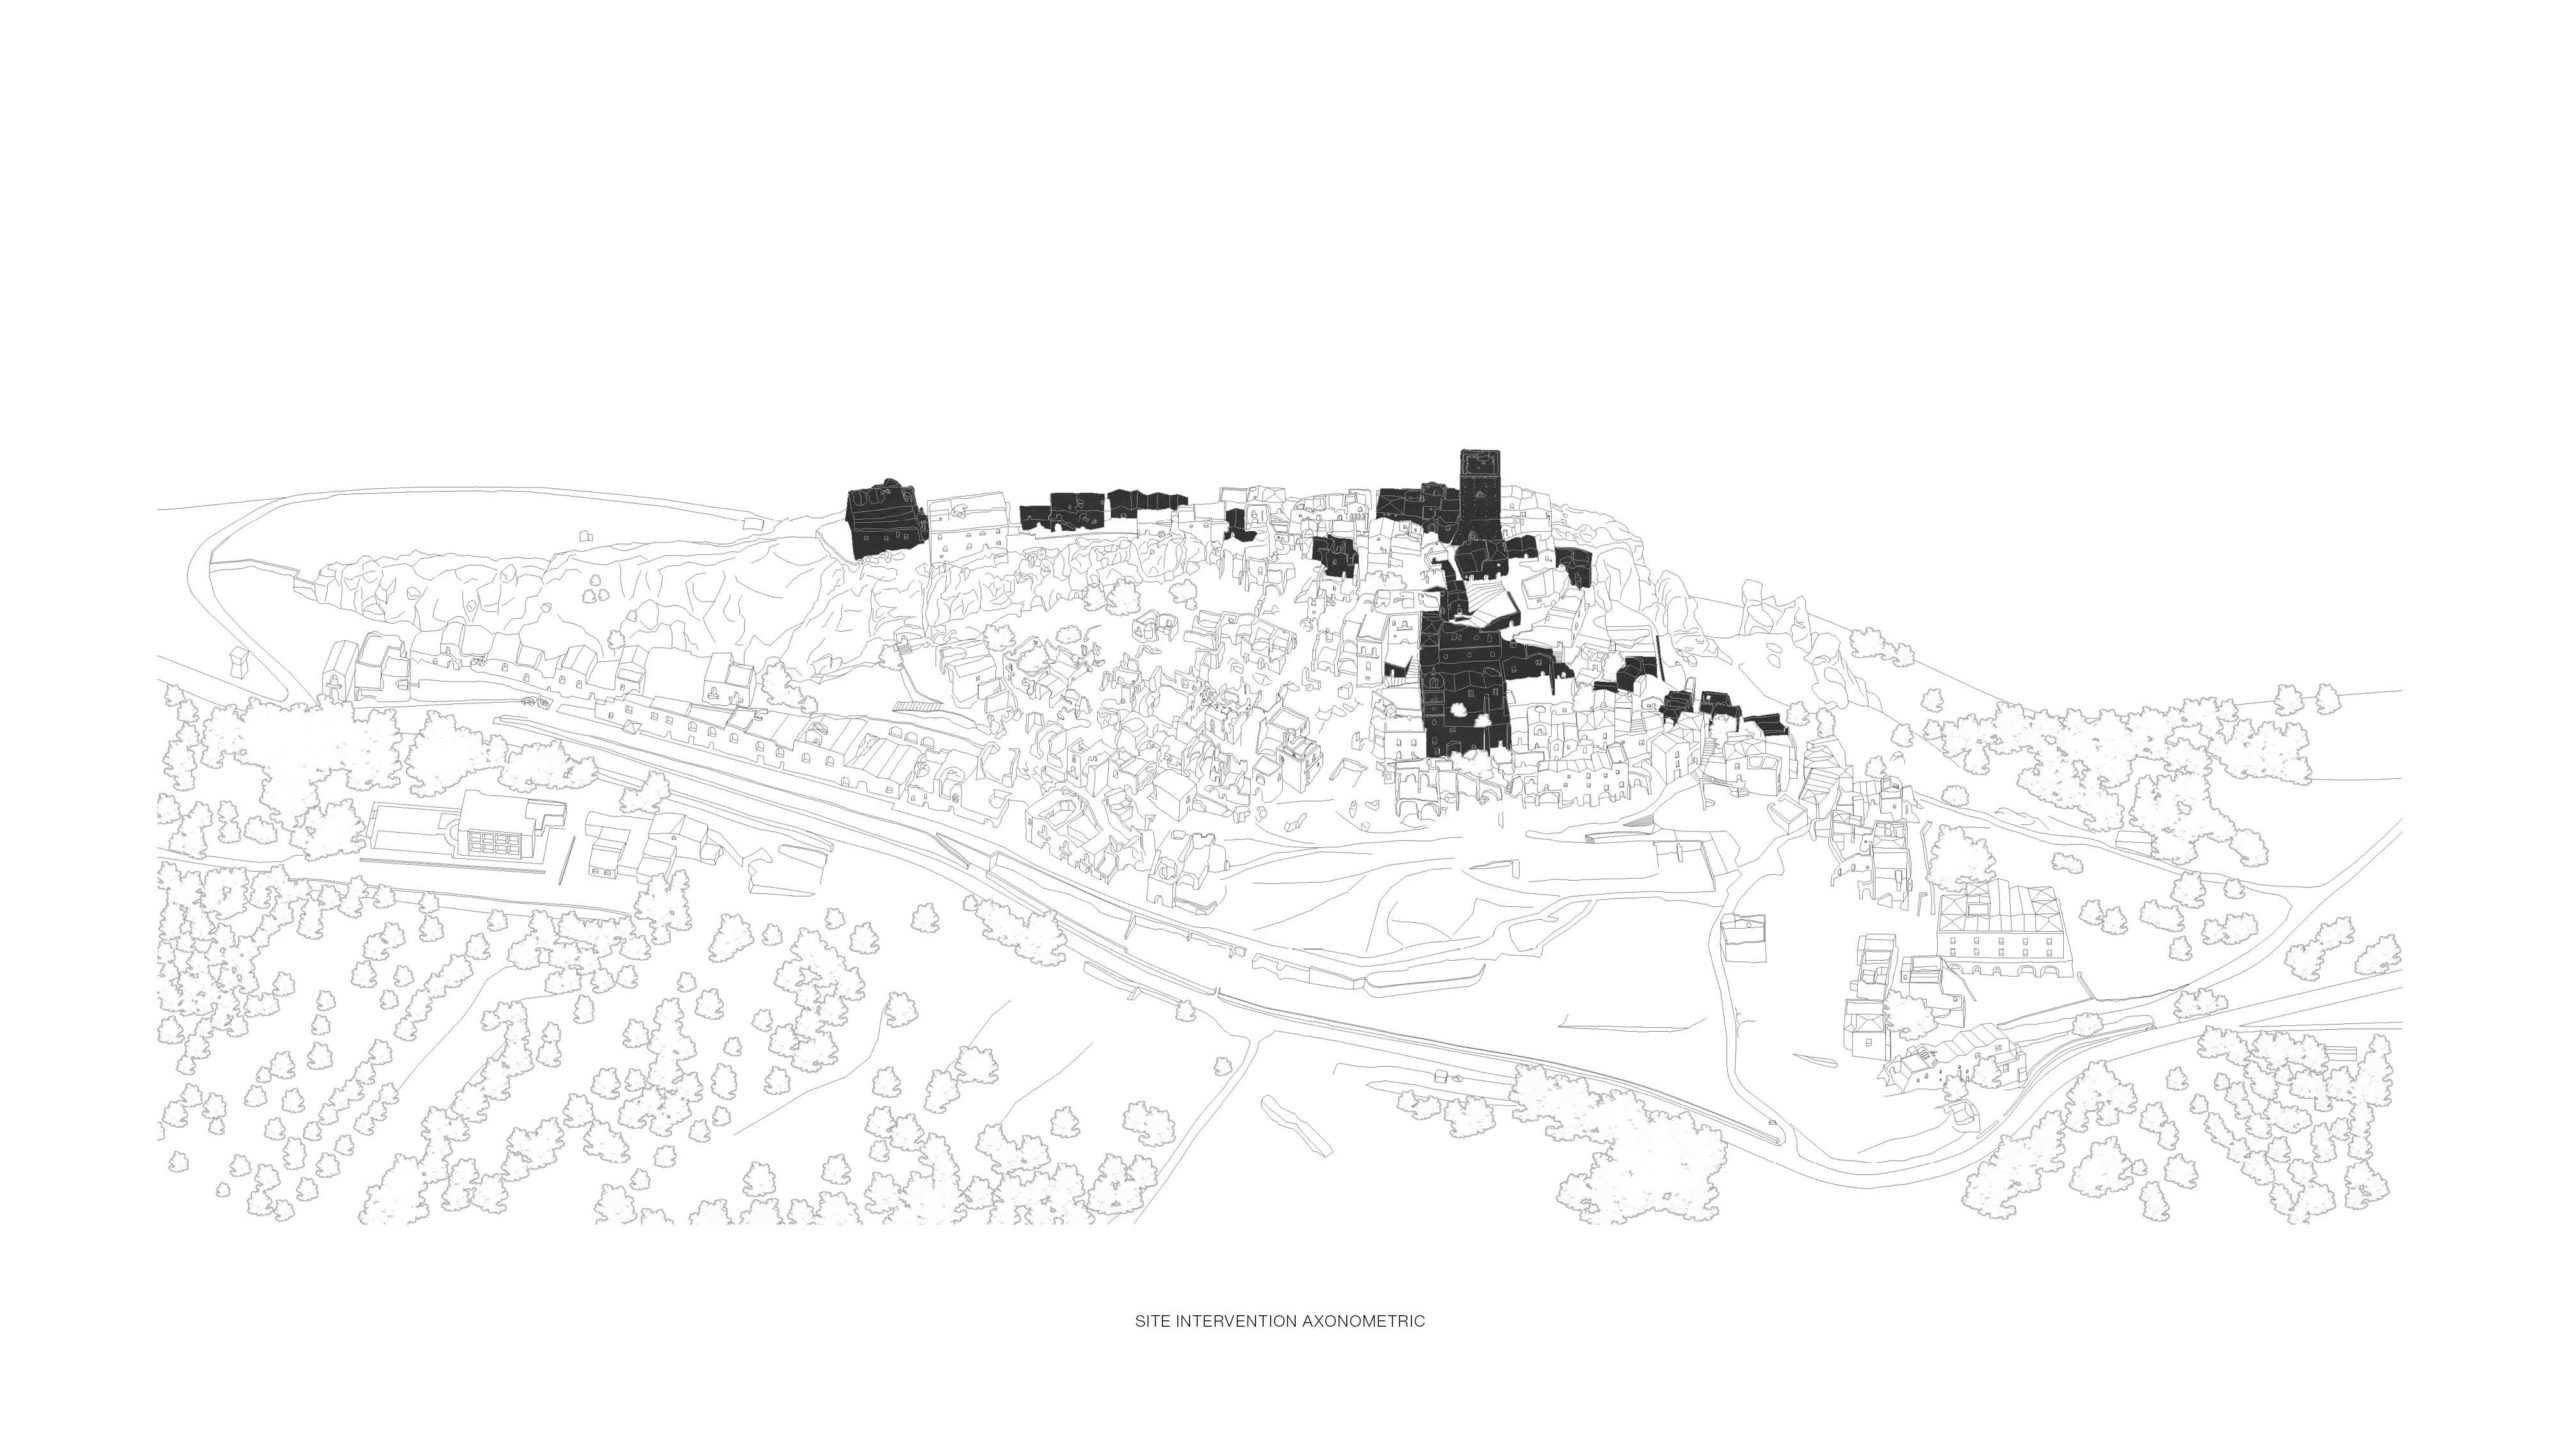 Unbuilt : TRACES - GHOST TOWN REFUGE, at Craco, Italy, by Claudio C. Araya, Yahya Abdullah 1